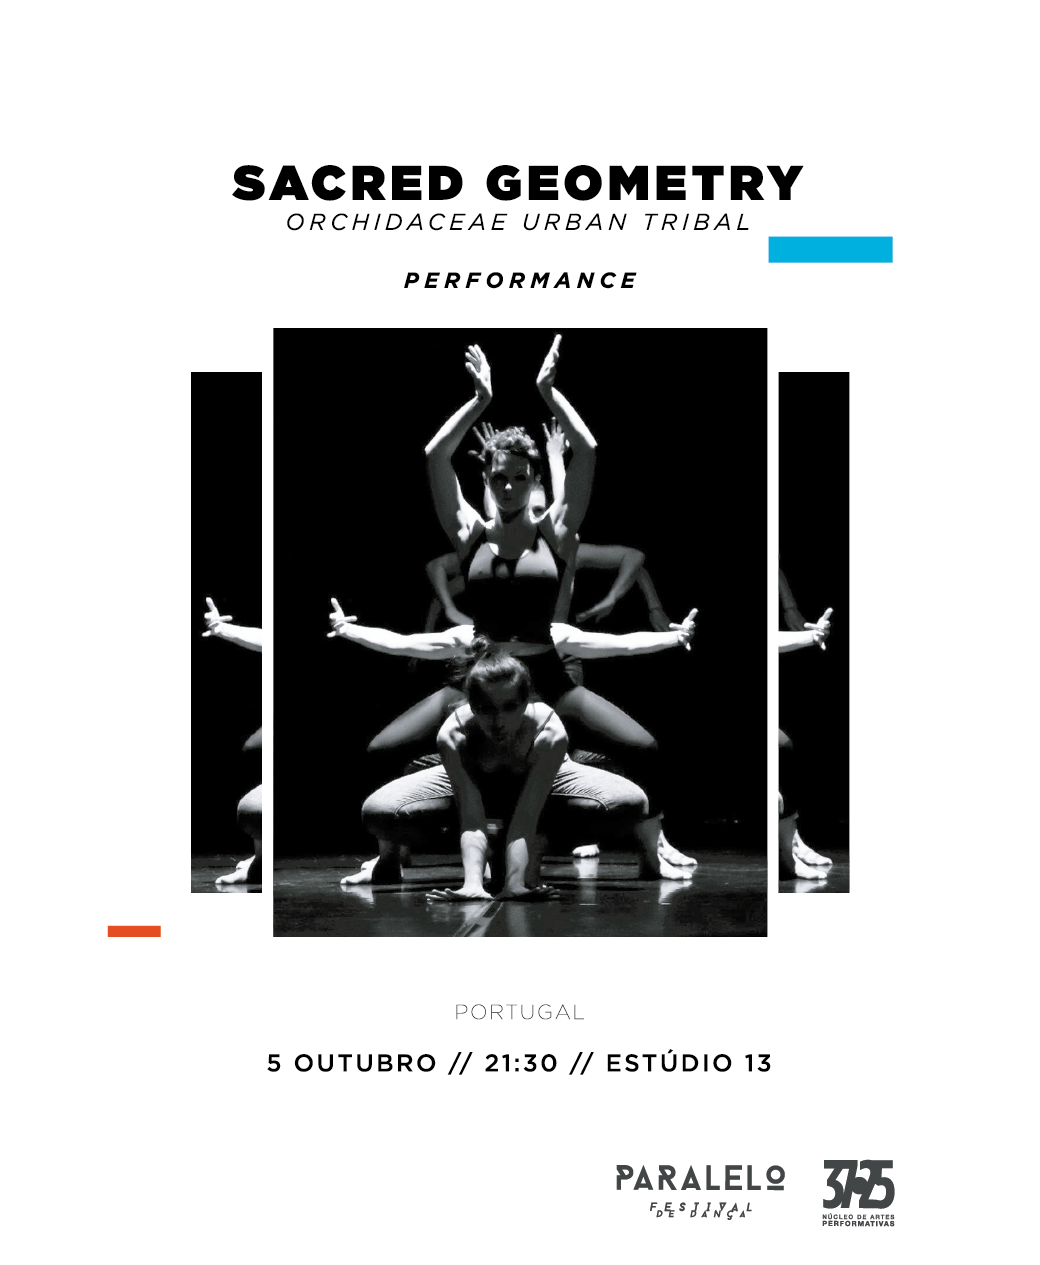 Sacred Geometry - Orchidaceae Dance Company